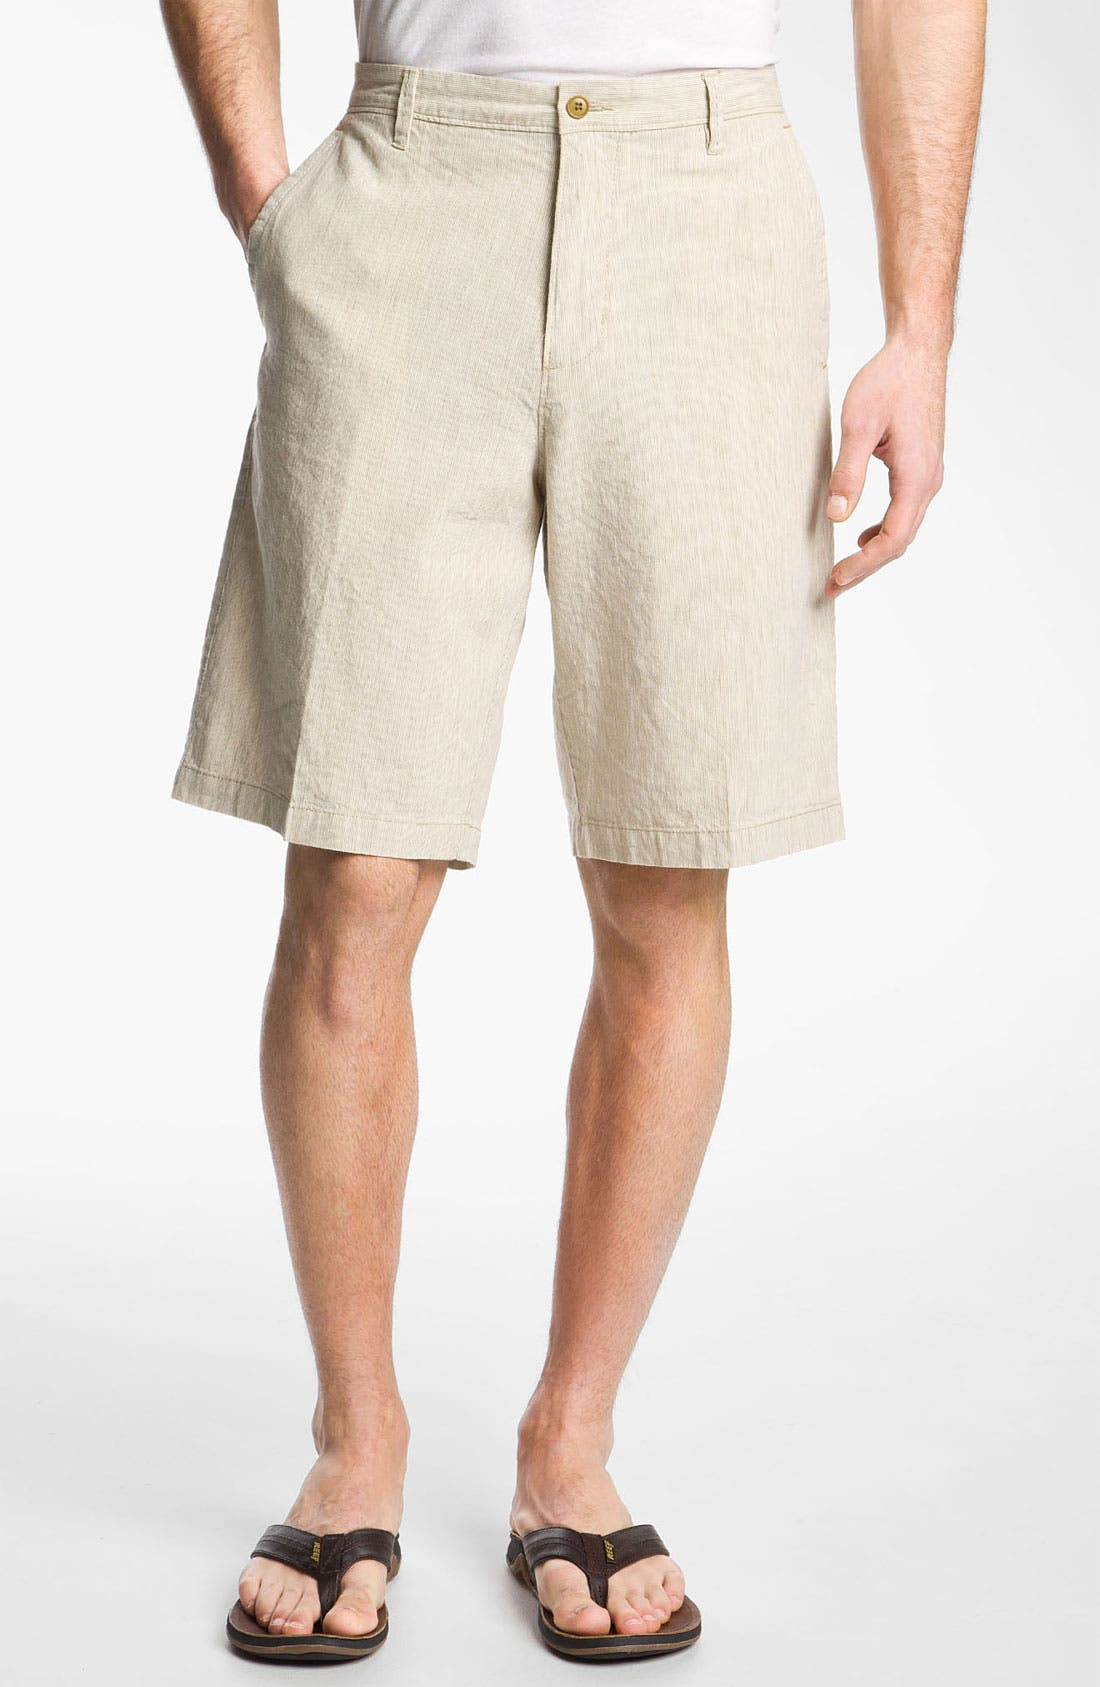 Alternate Image 1 Selected - Tommy Bahama 'All Aboard' Shorts